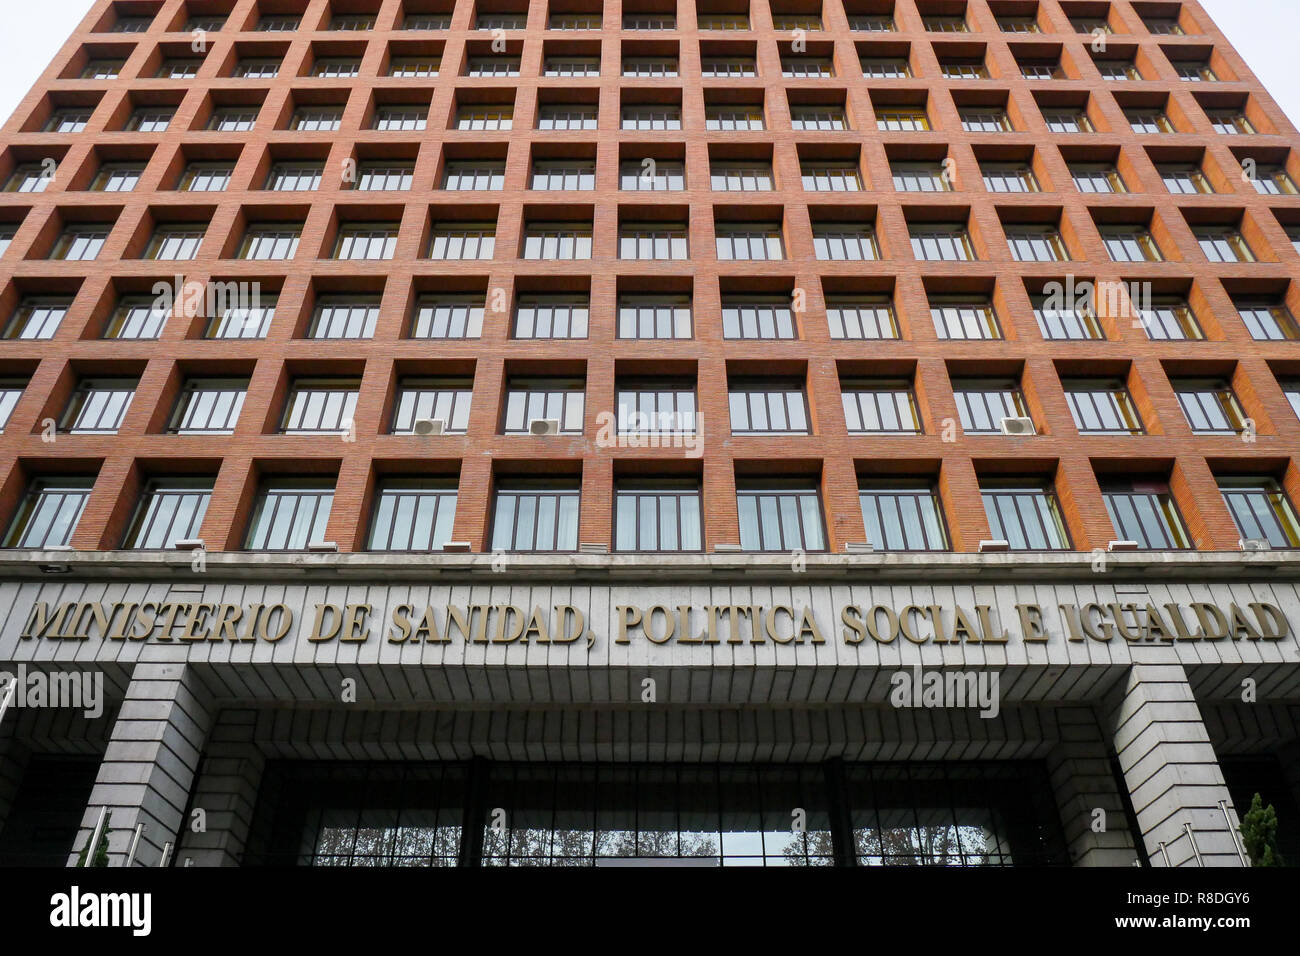 Ministry of Health, social policy and equality, Madrid, Spain - Stock Image